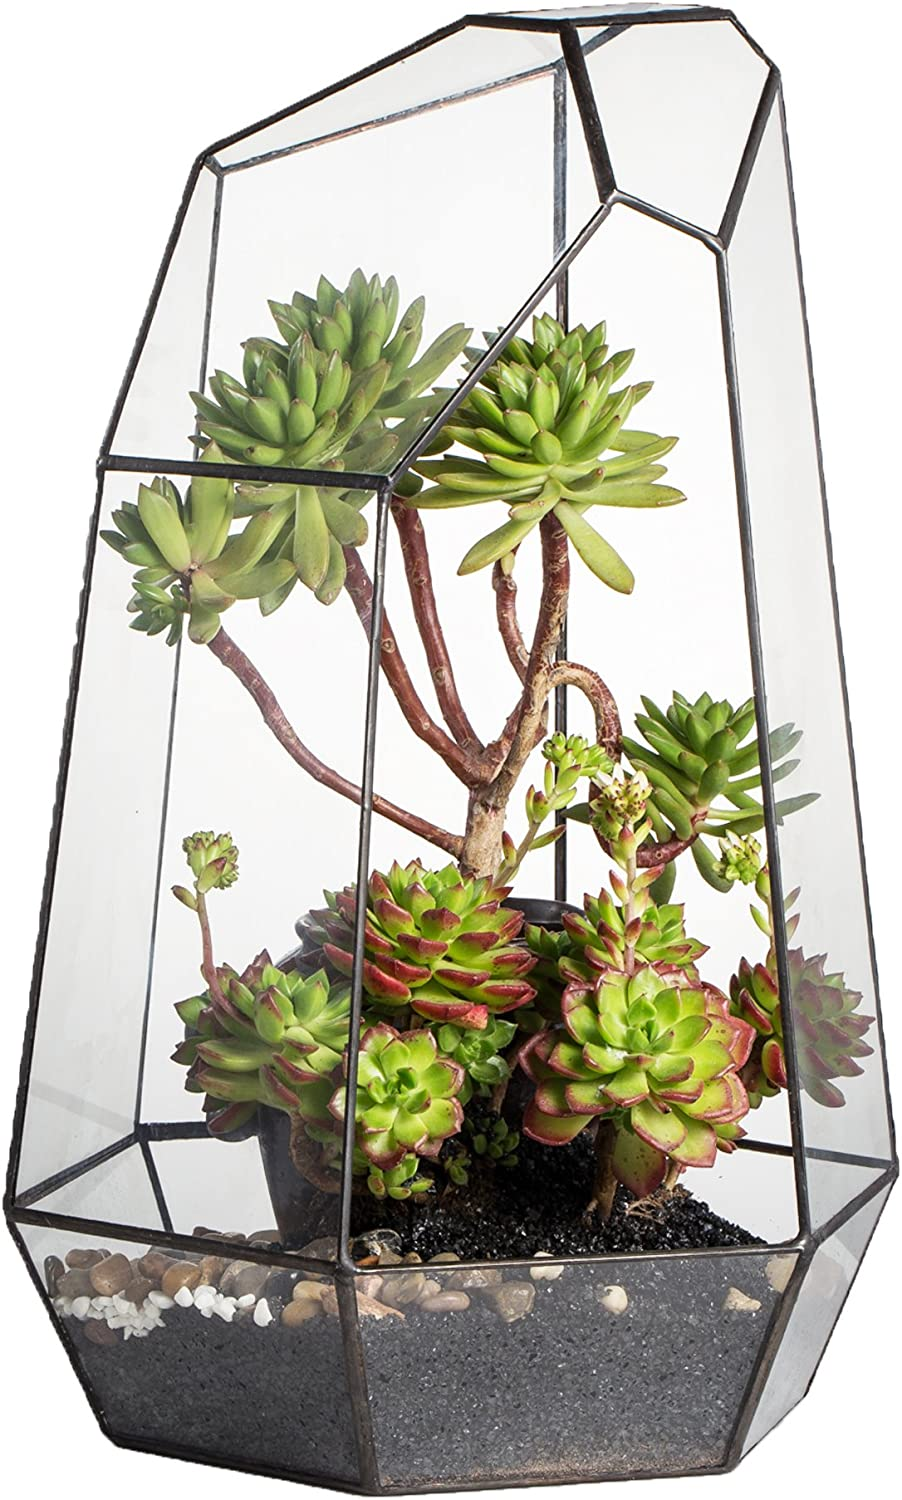 NCYP 16 inches Height Super Large Handmade Irregular Prism Glass Geometric Terrarium Indoor Outdoot Display Box Tabletop Succulent Plant Planter Garden Fern Moss Flower Pot Bonsai Tall Centerpiece